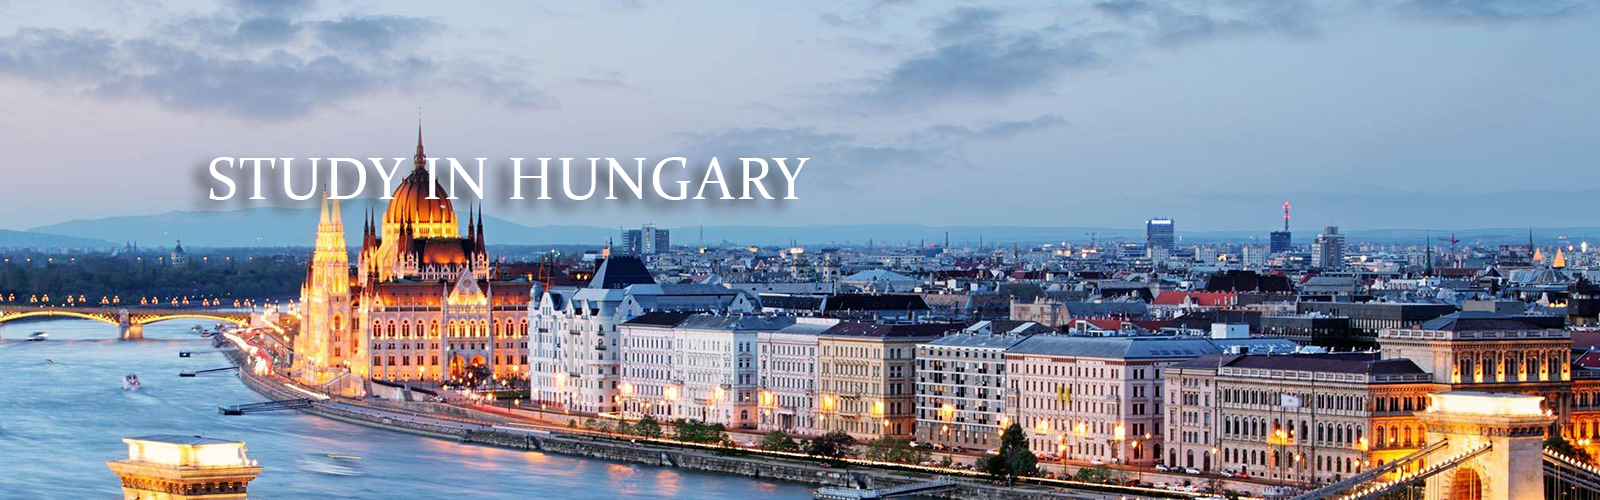 Study In Hungary Education Consultants In Amritsar, Punjab & Chandigarh